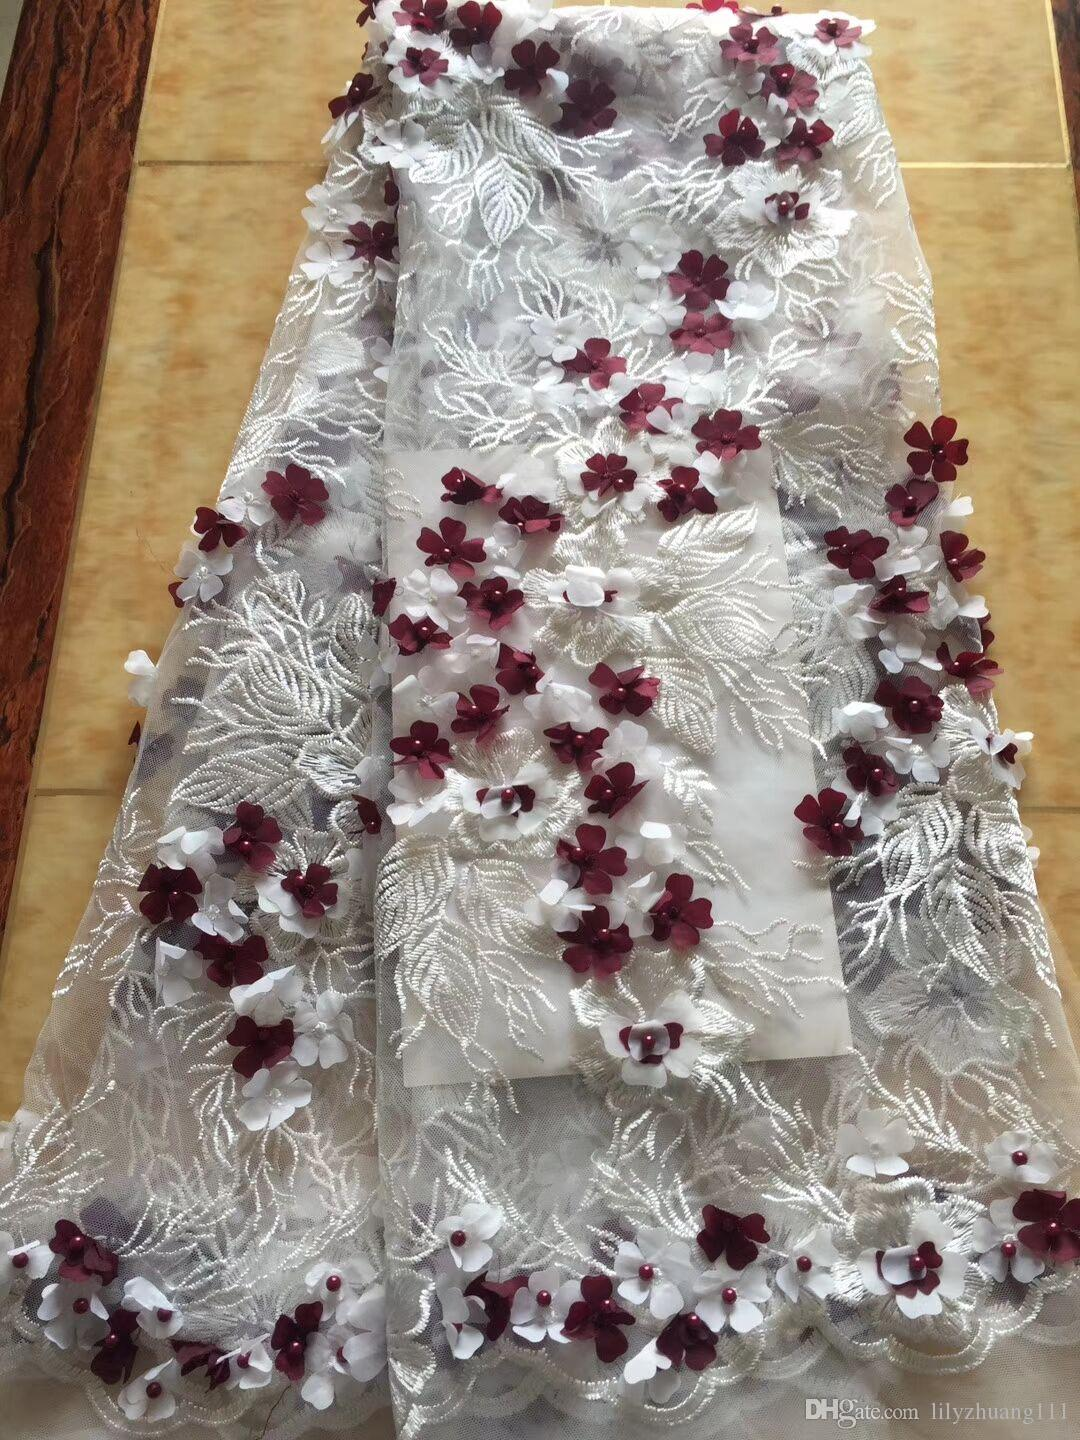 frican Lace Fabric High quality New arrival water soluble net African french lace fabric with drill and beads for wedding